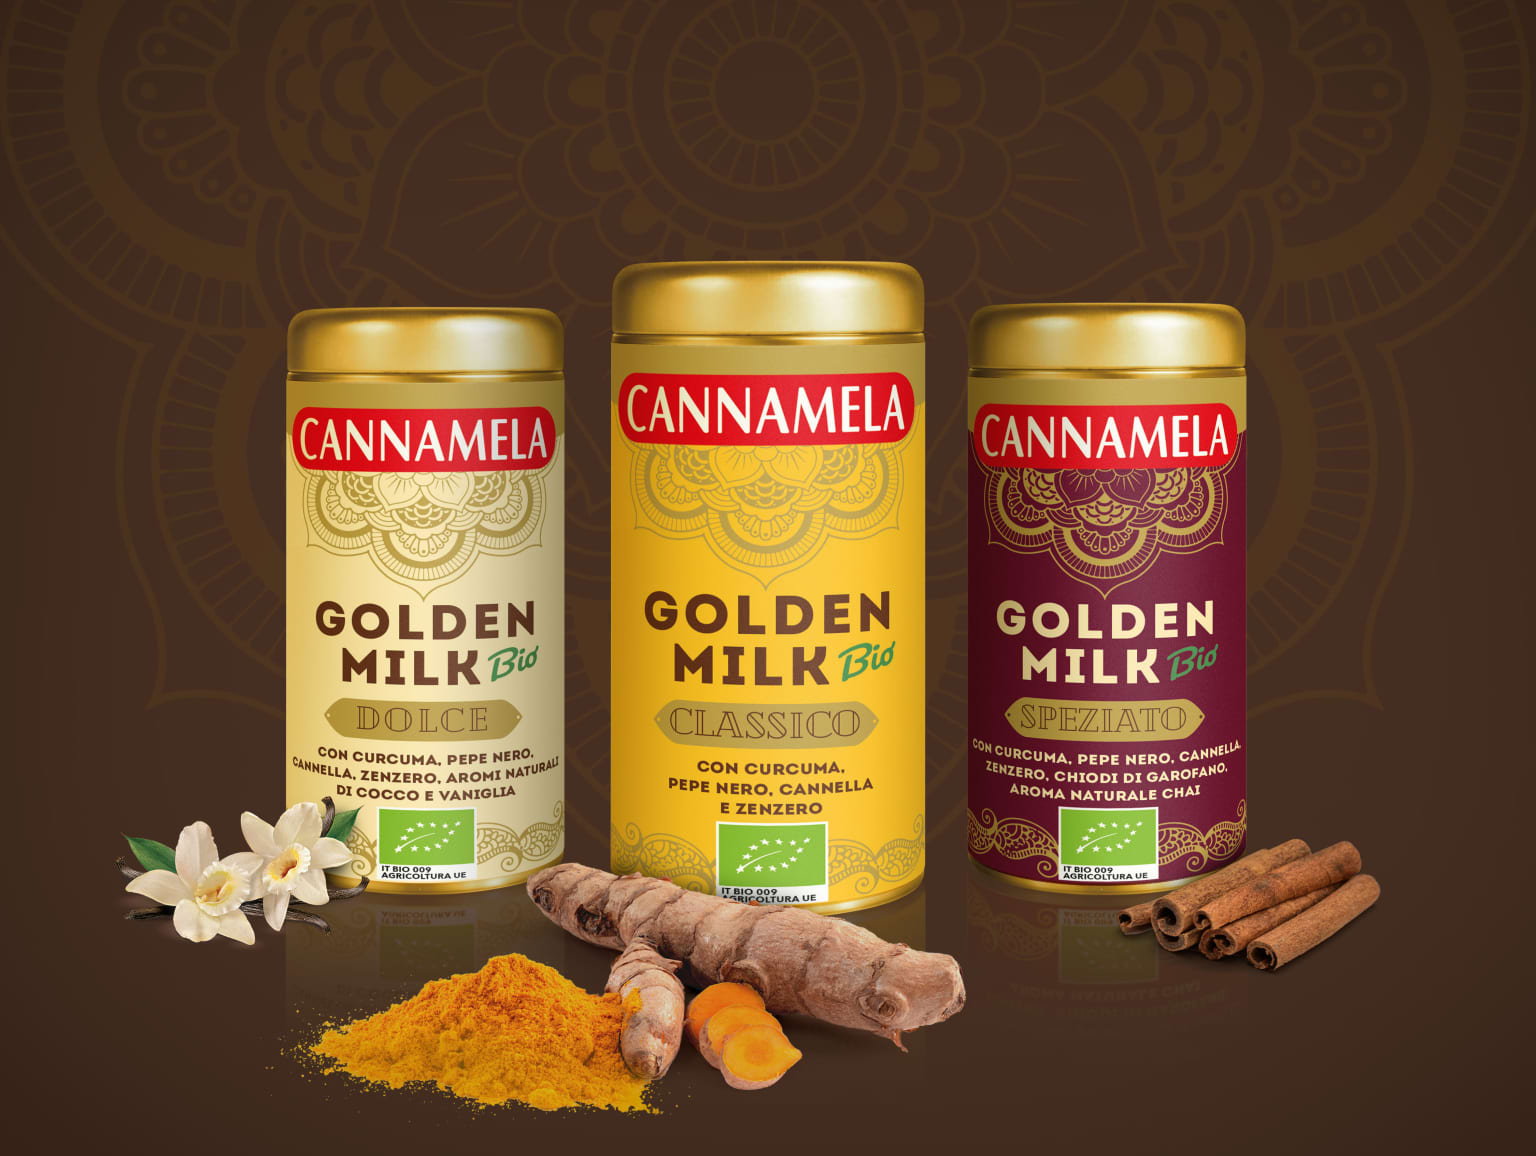 Cannamela Golden Milk - New Product Packaging